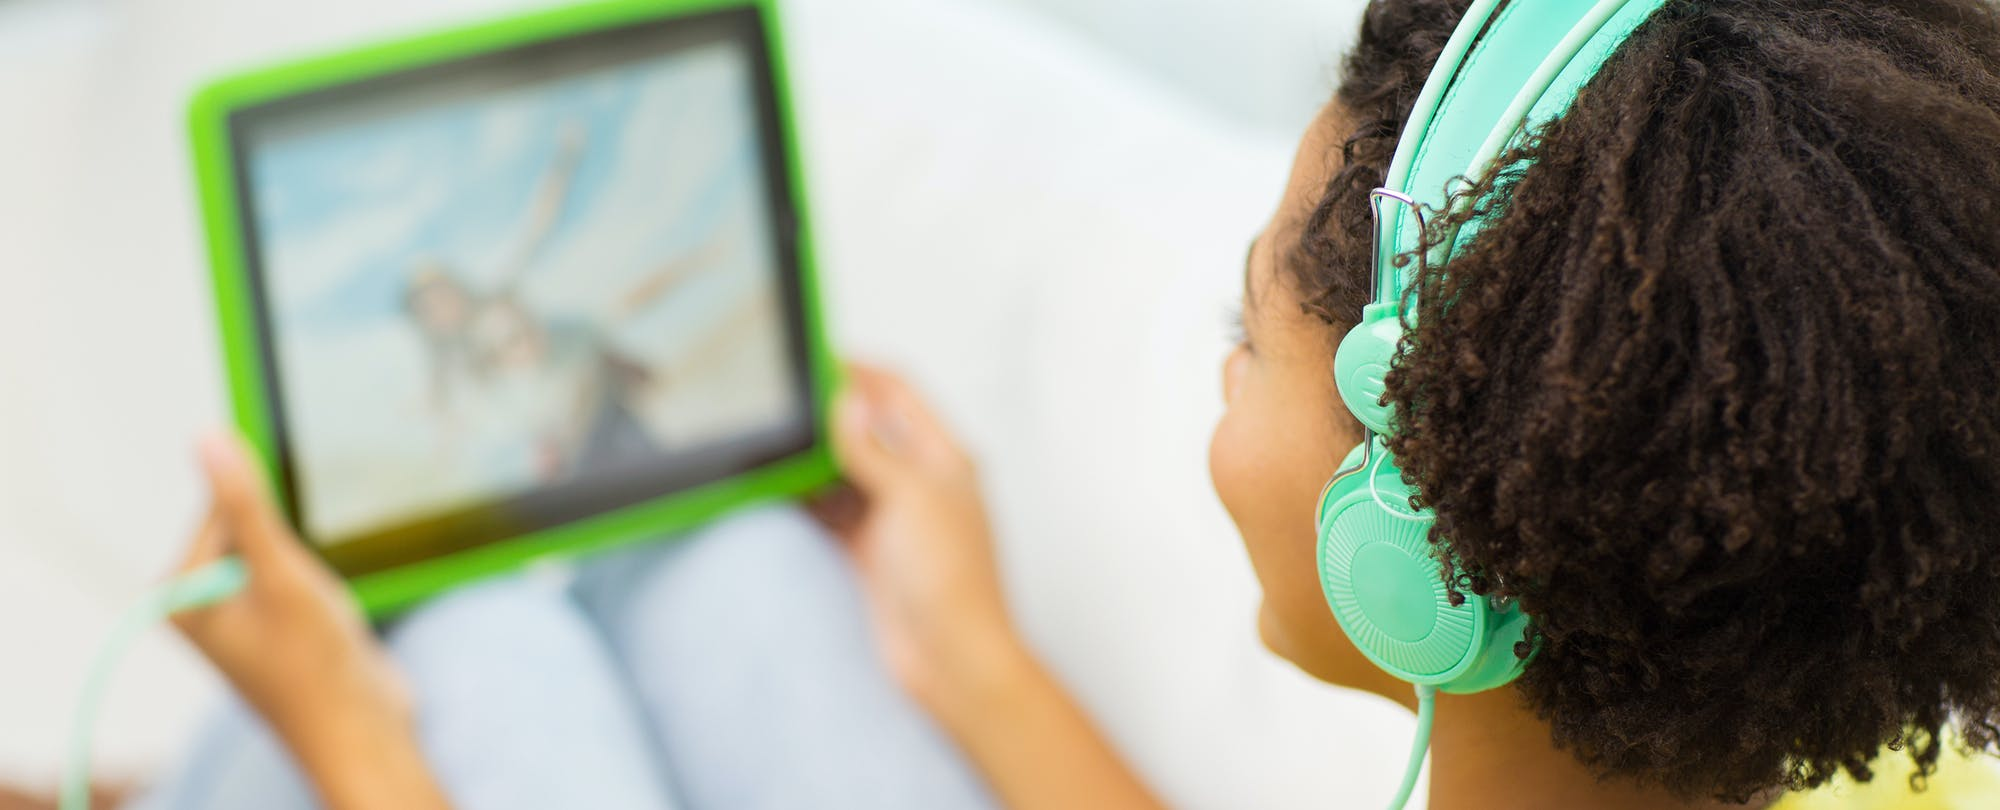 Playlists Alone Don't Equal Personalized Learning